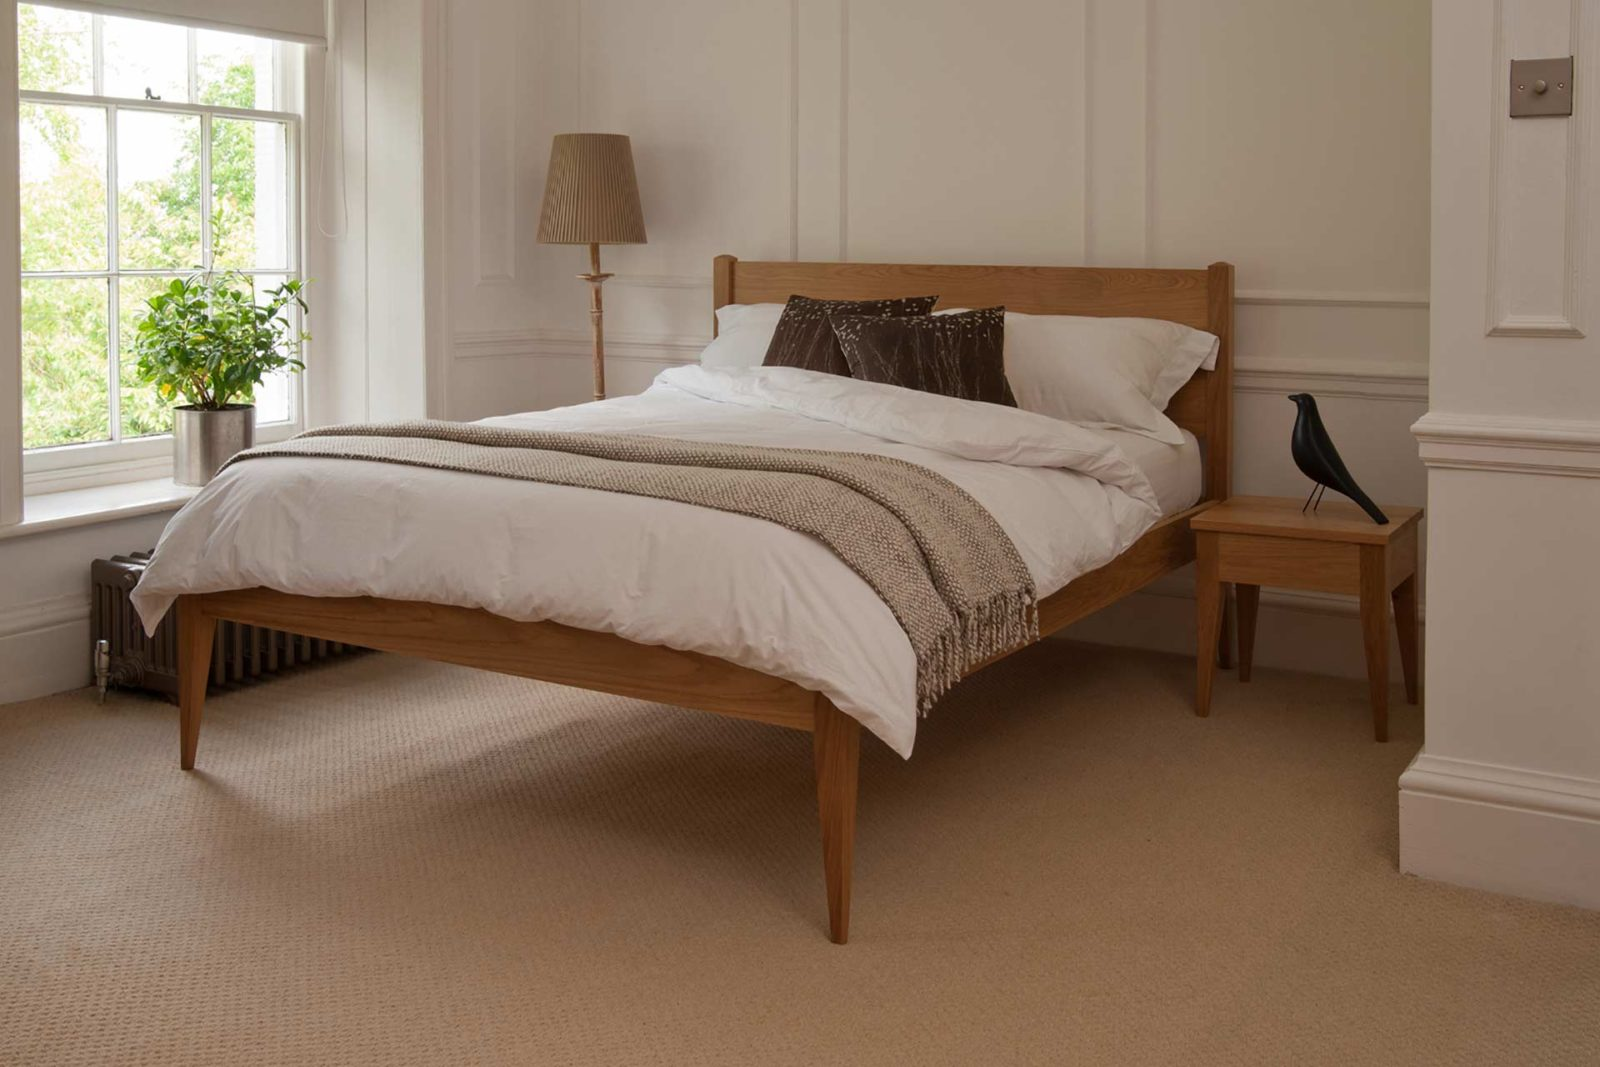 A Classic taller wooden Bed, The Cochin is available to order in a choice of timbers and bed sizes